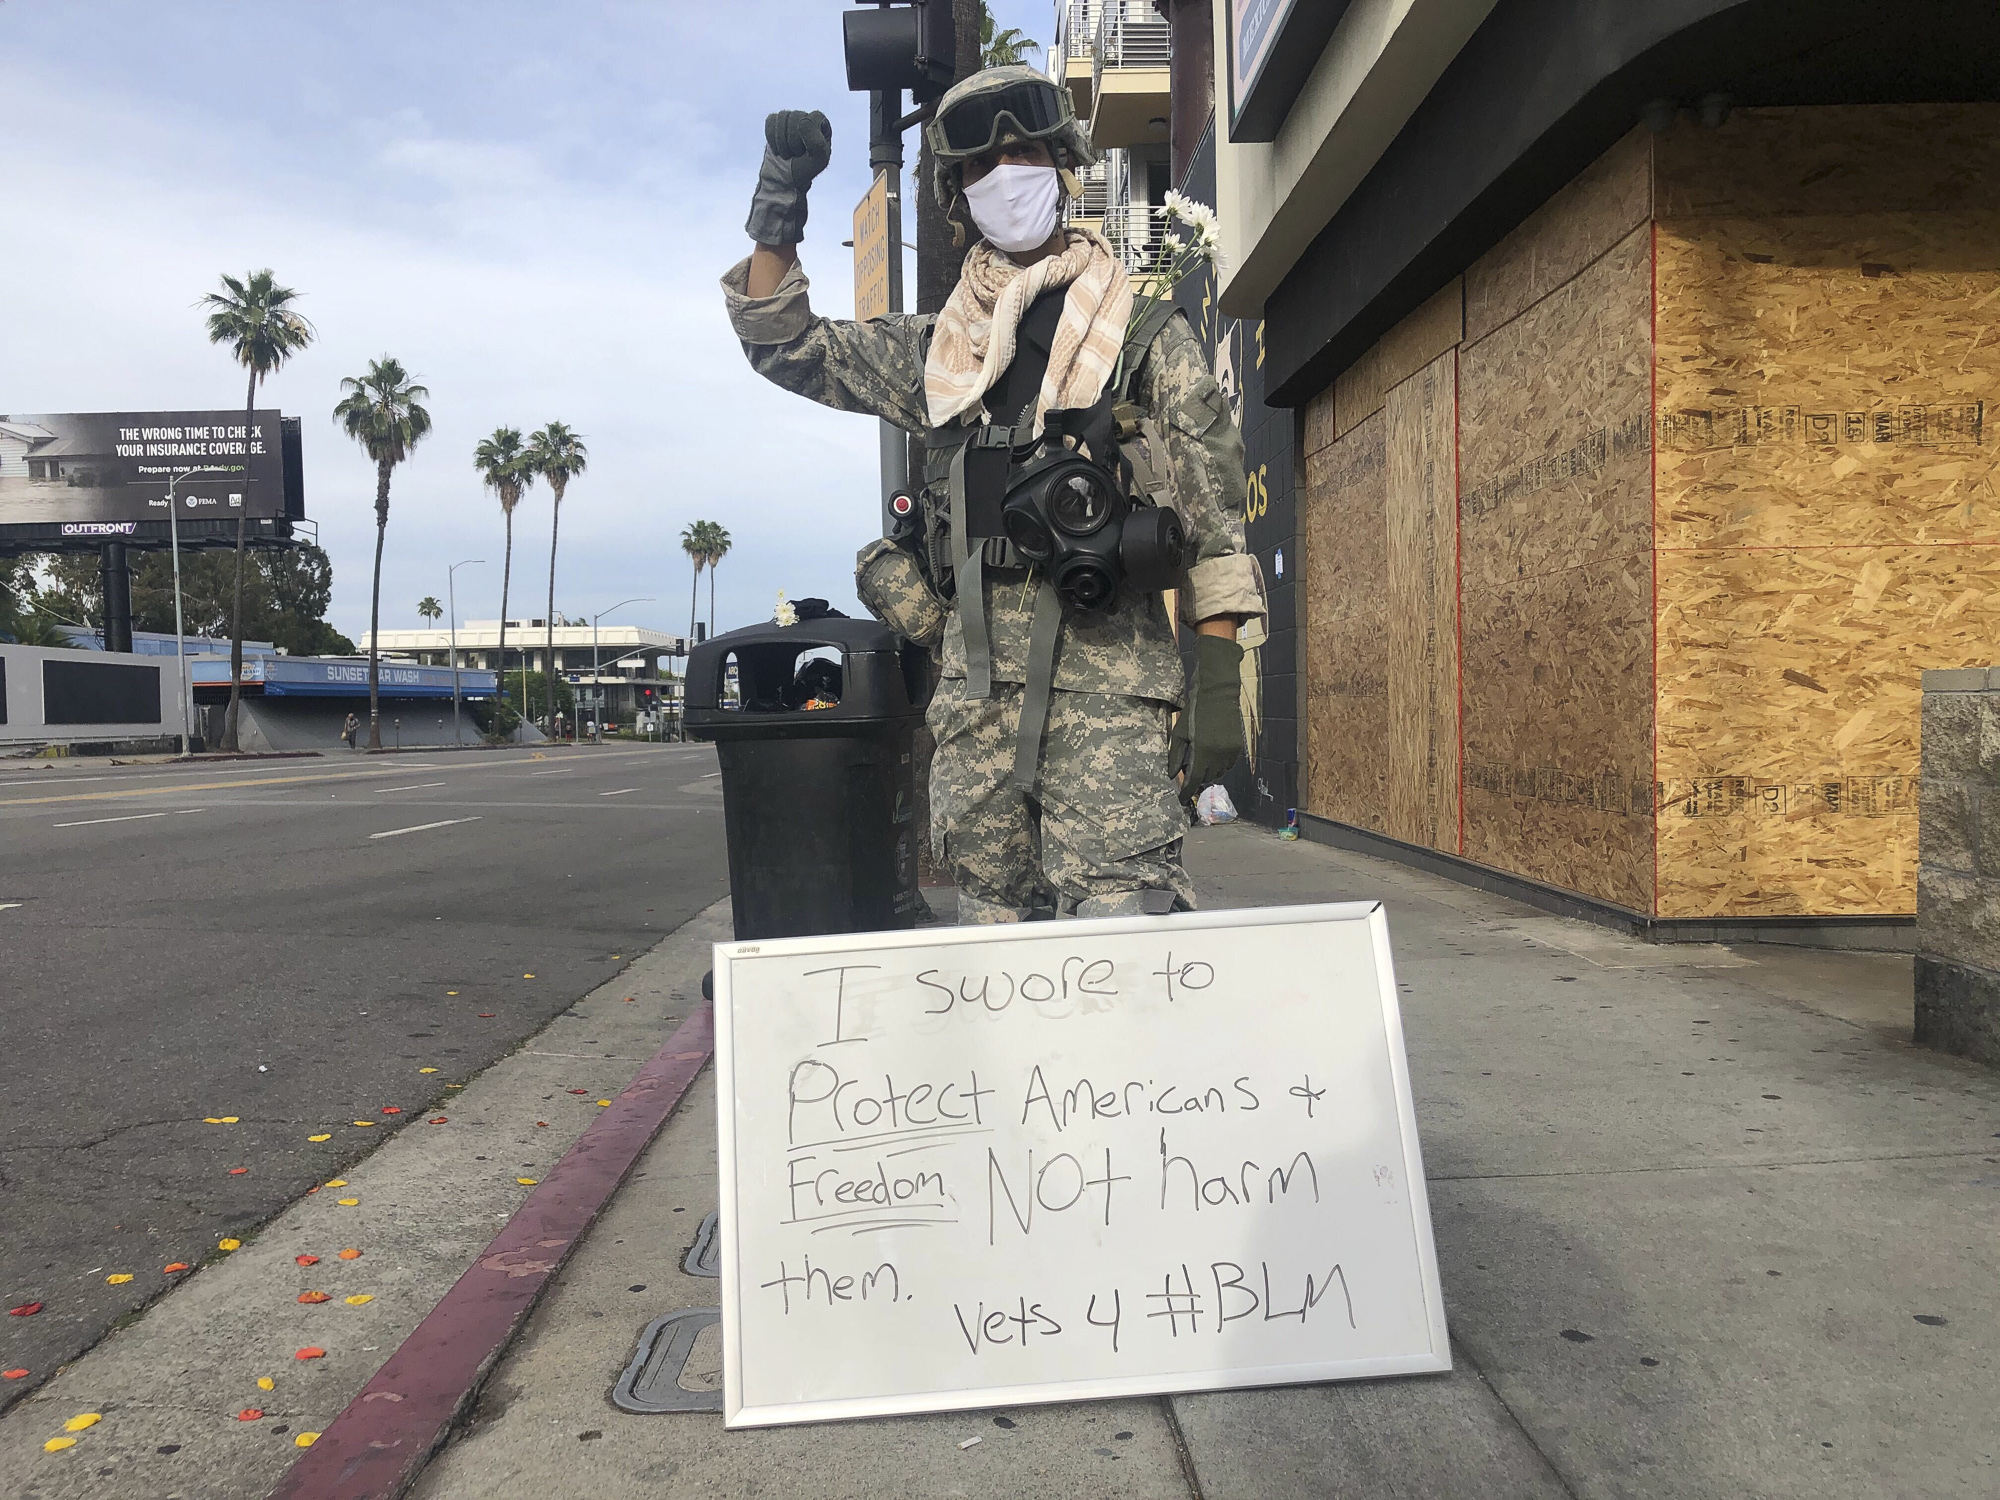 Nathaniel Johnson, 30, a former combat engineer wears his U.S. Army uniform to a protest in Hollywood on June 1, 2020. Photo by Nigel Duara for CalMatters